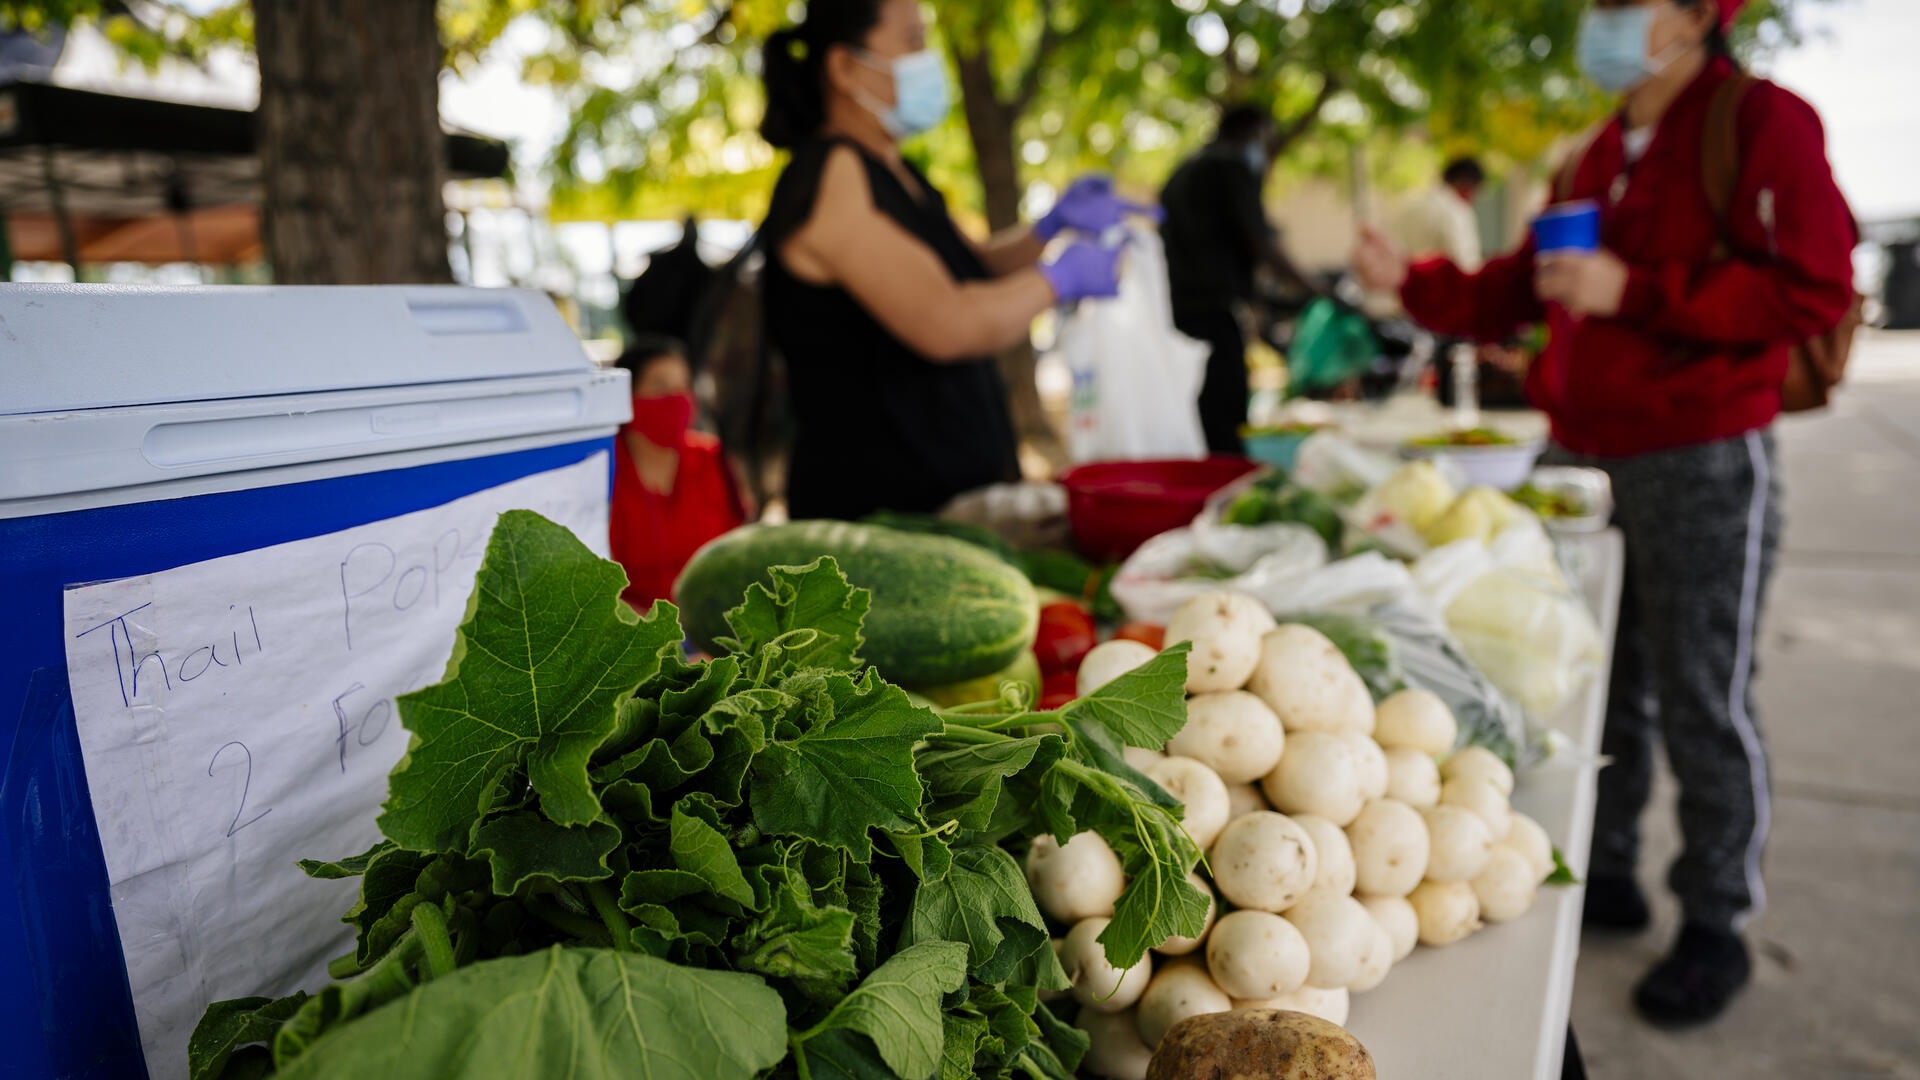 Two people communicate over a table full of produce.